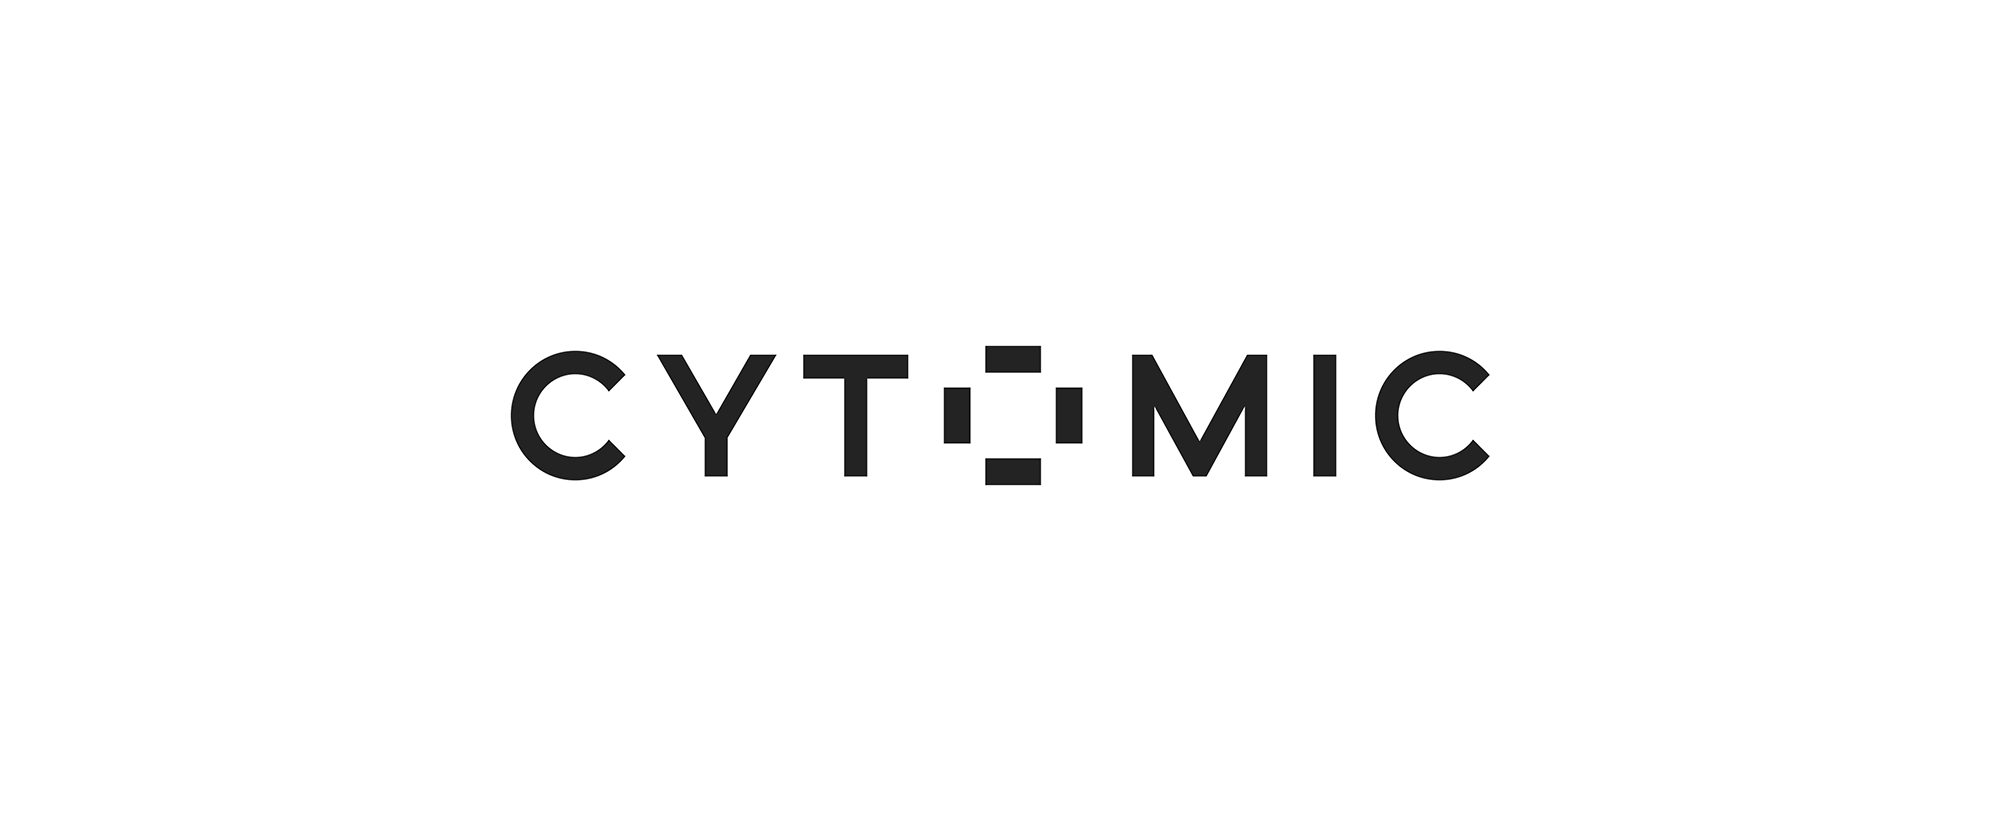 New Logo and Identity for Cytomic by The Woork Co